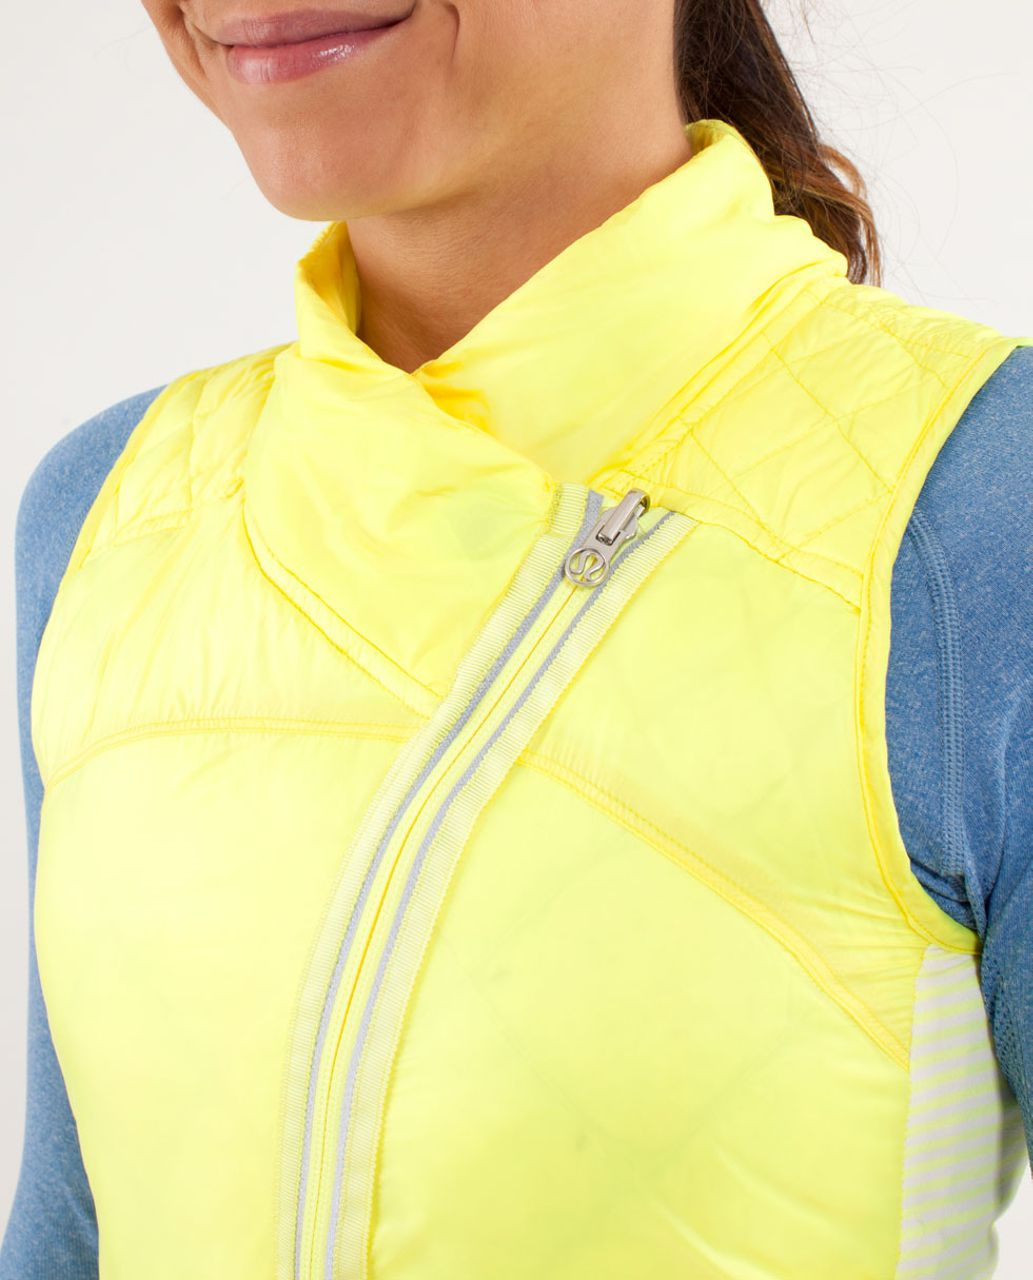 Lululemon What The Fluff Vest - Clarity Yellow